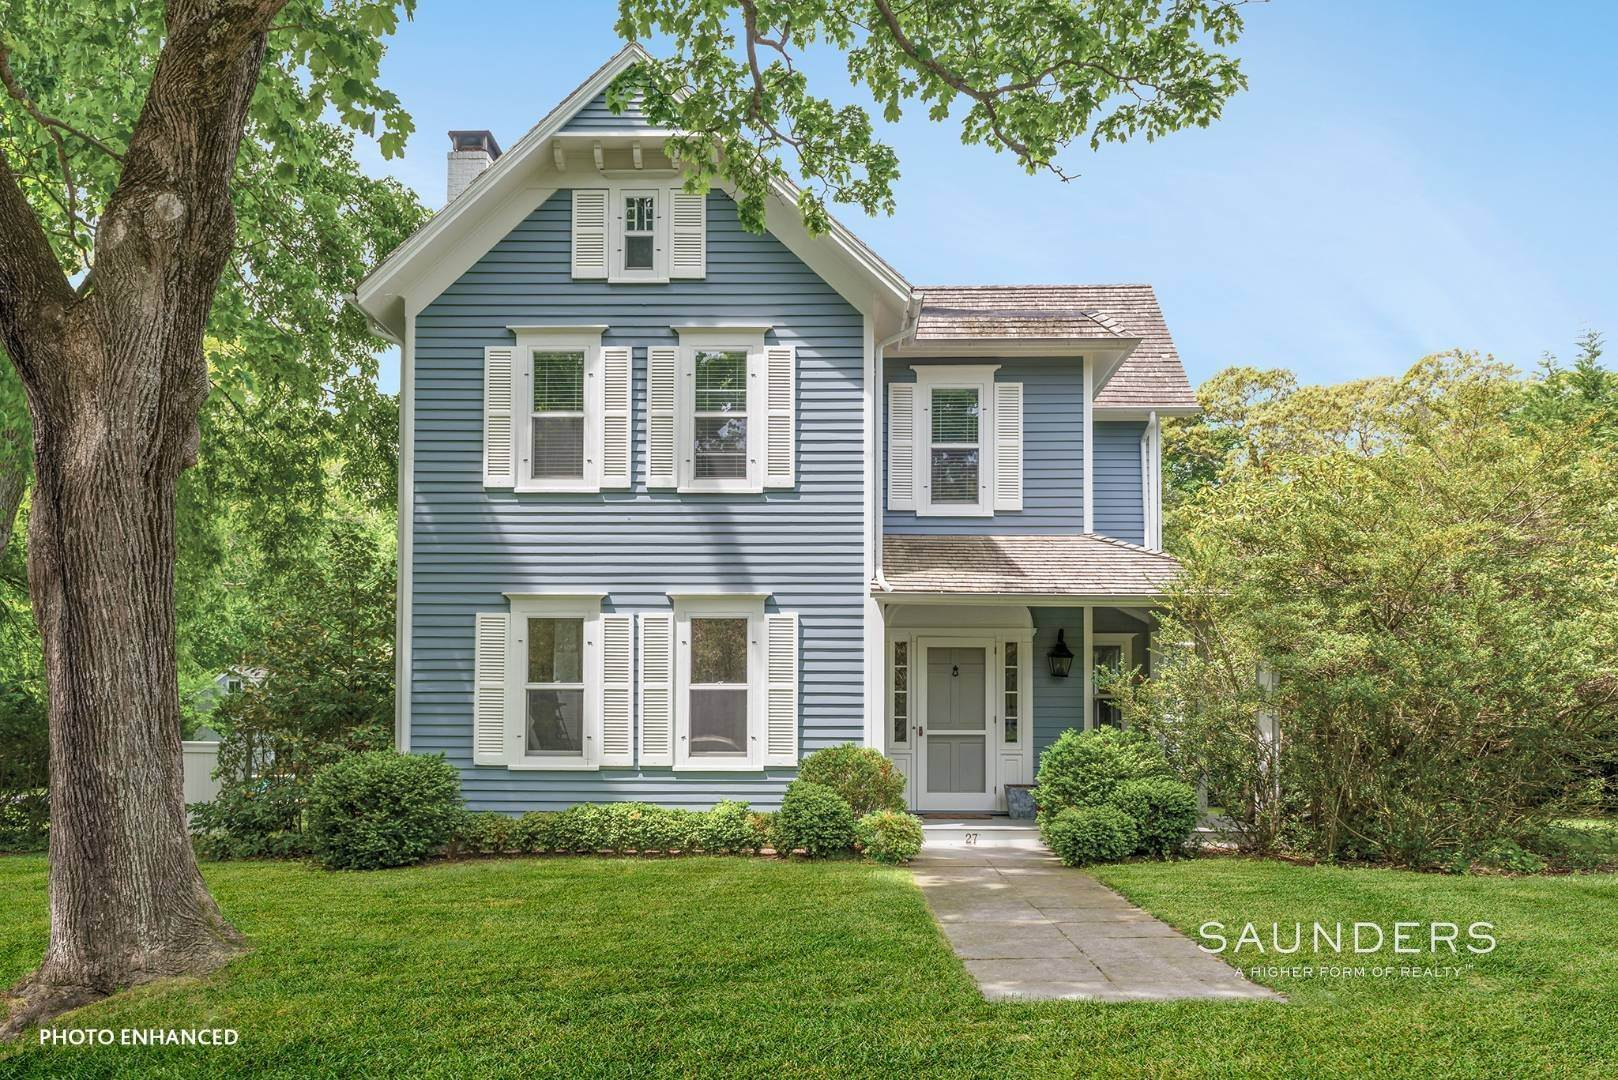 Single Family Homes for Sale at Historic Sag Harbor Charm On Rare Over Half Acre 27 Columbia Street, Sag Harbor, Southampton Town, NY 11963